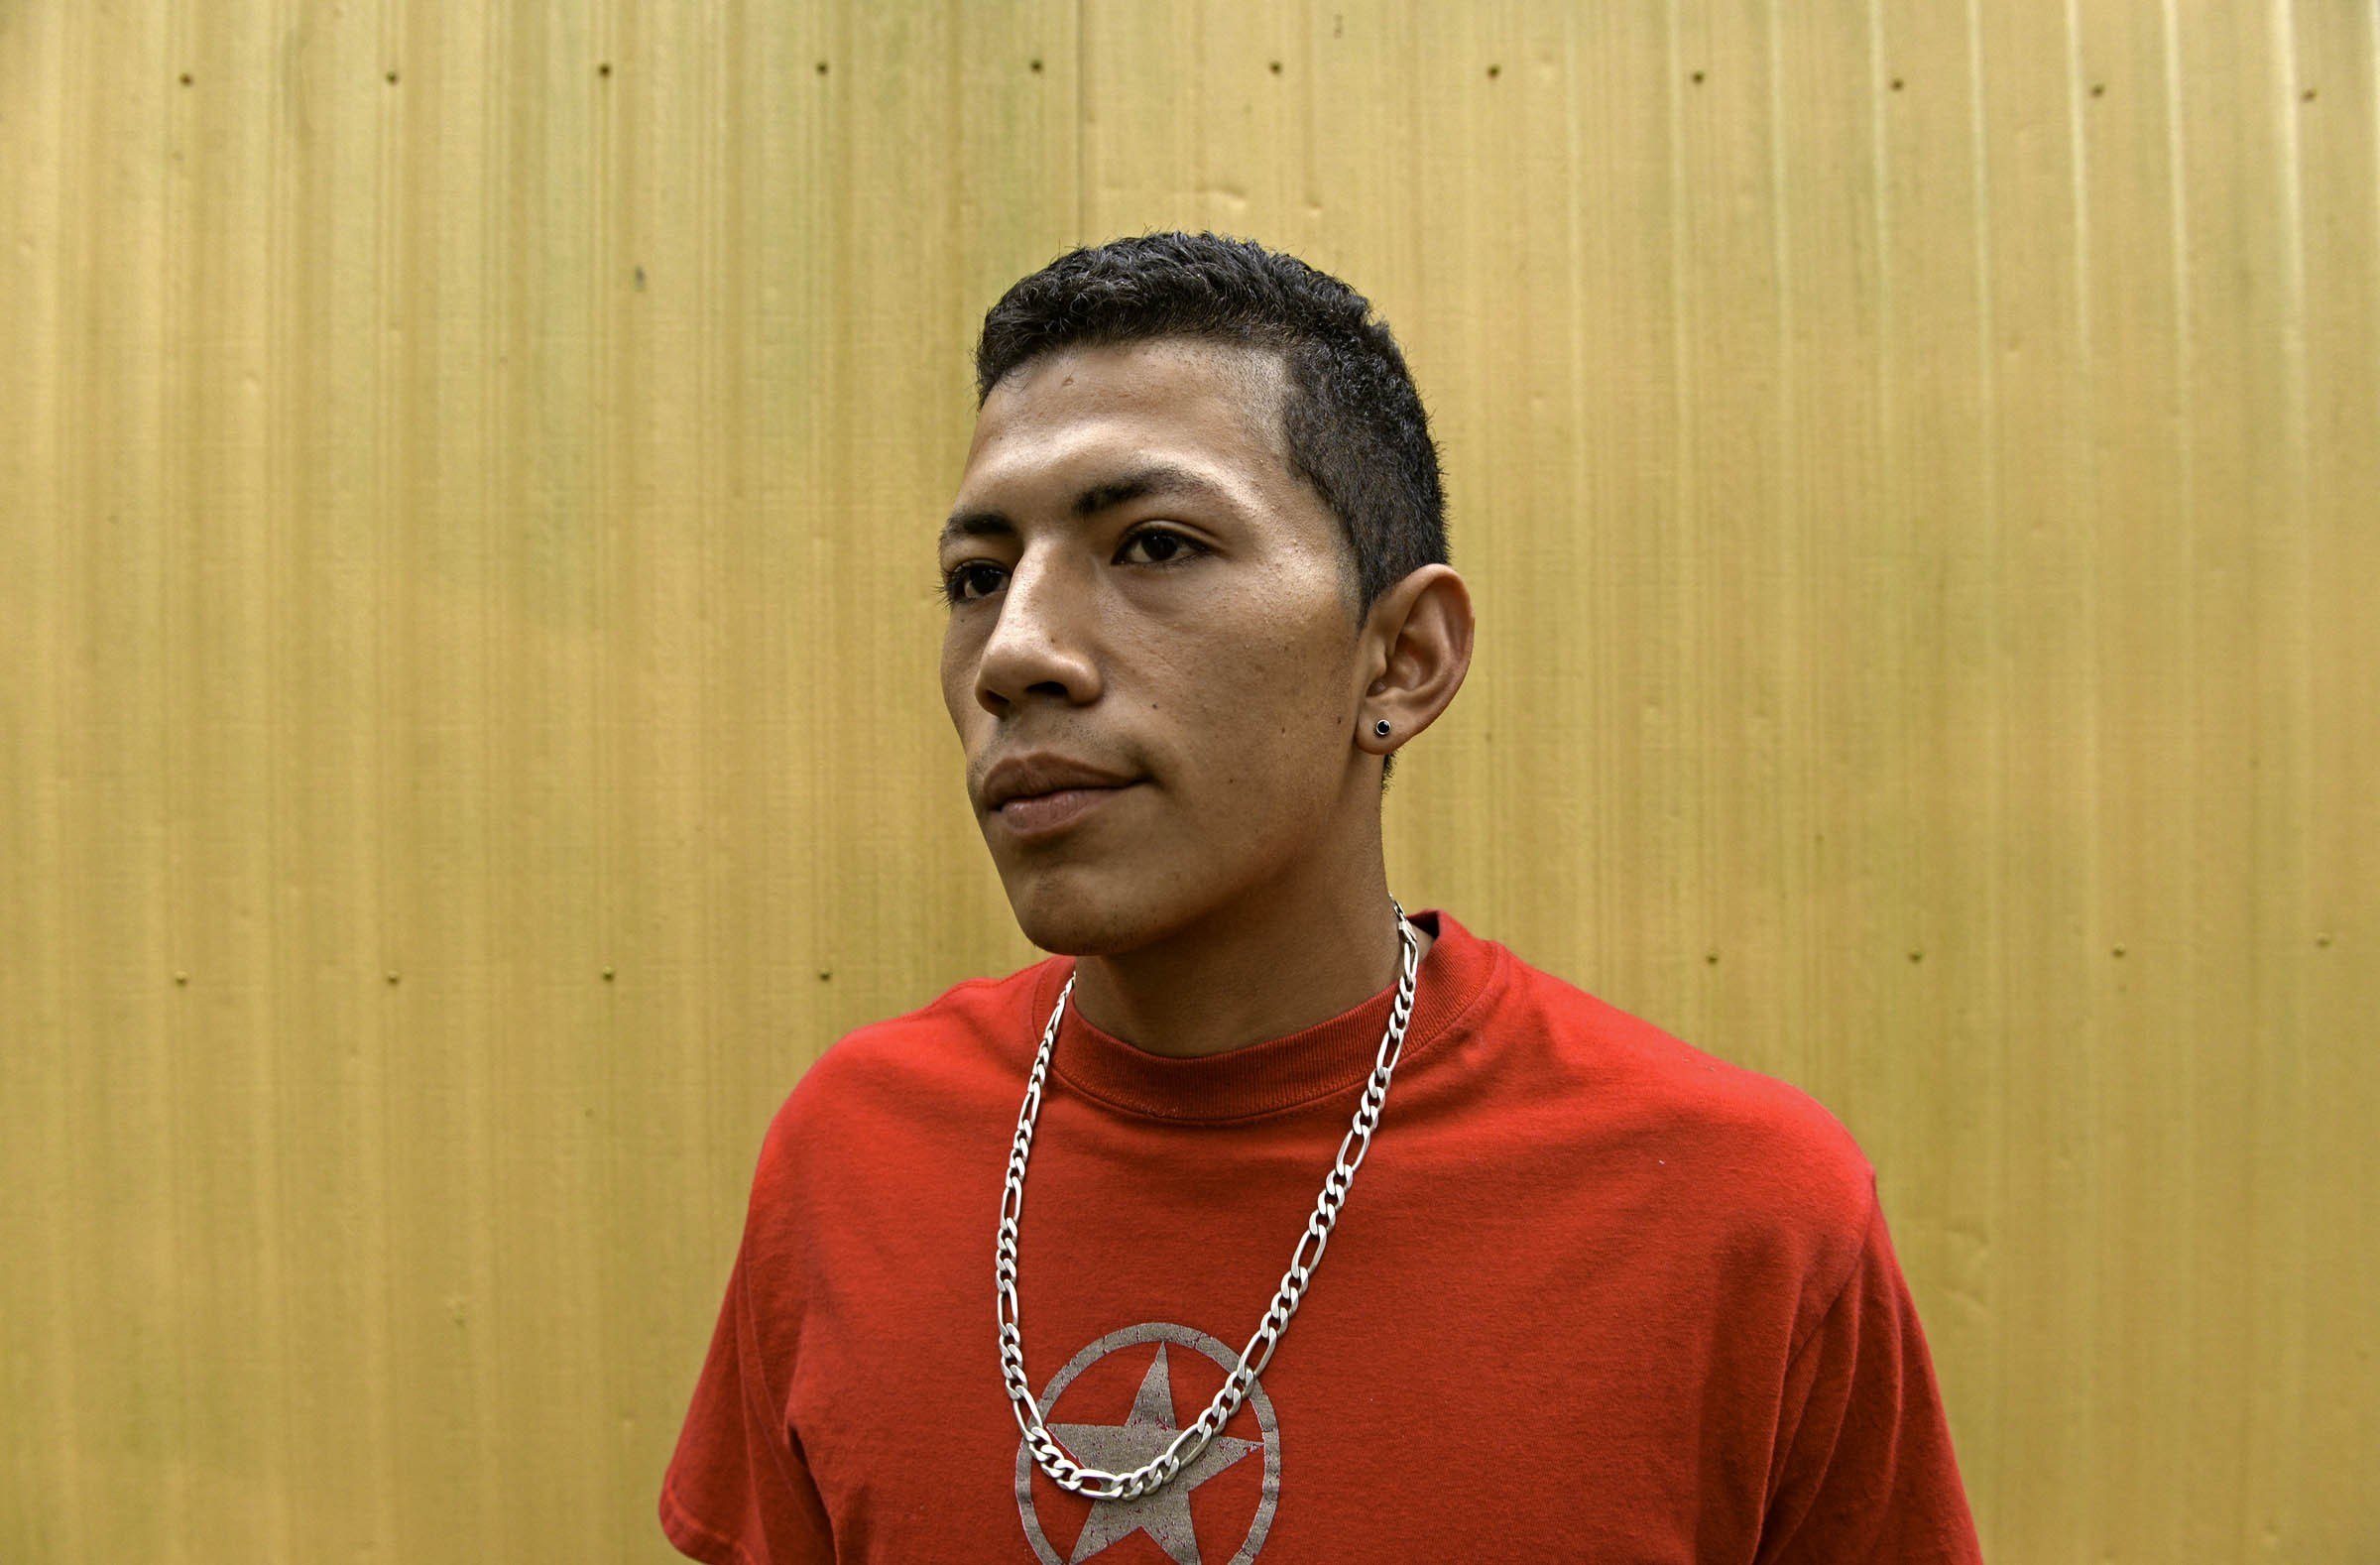 """Omar Zuniga has one overriding concern as he starts a new year at Huguenot High School: """"I'm worried they're going to end up putting me in jail."""" - SCOTT ELMQUIST"""